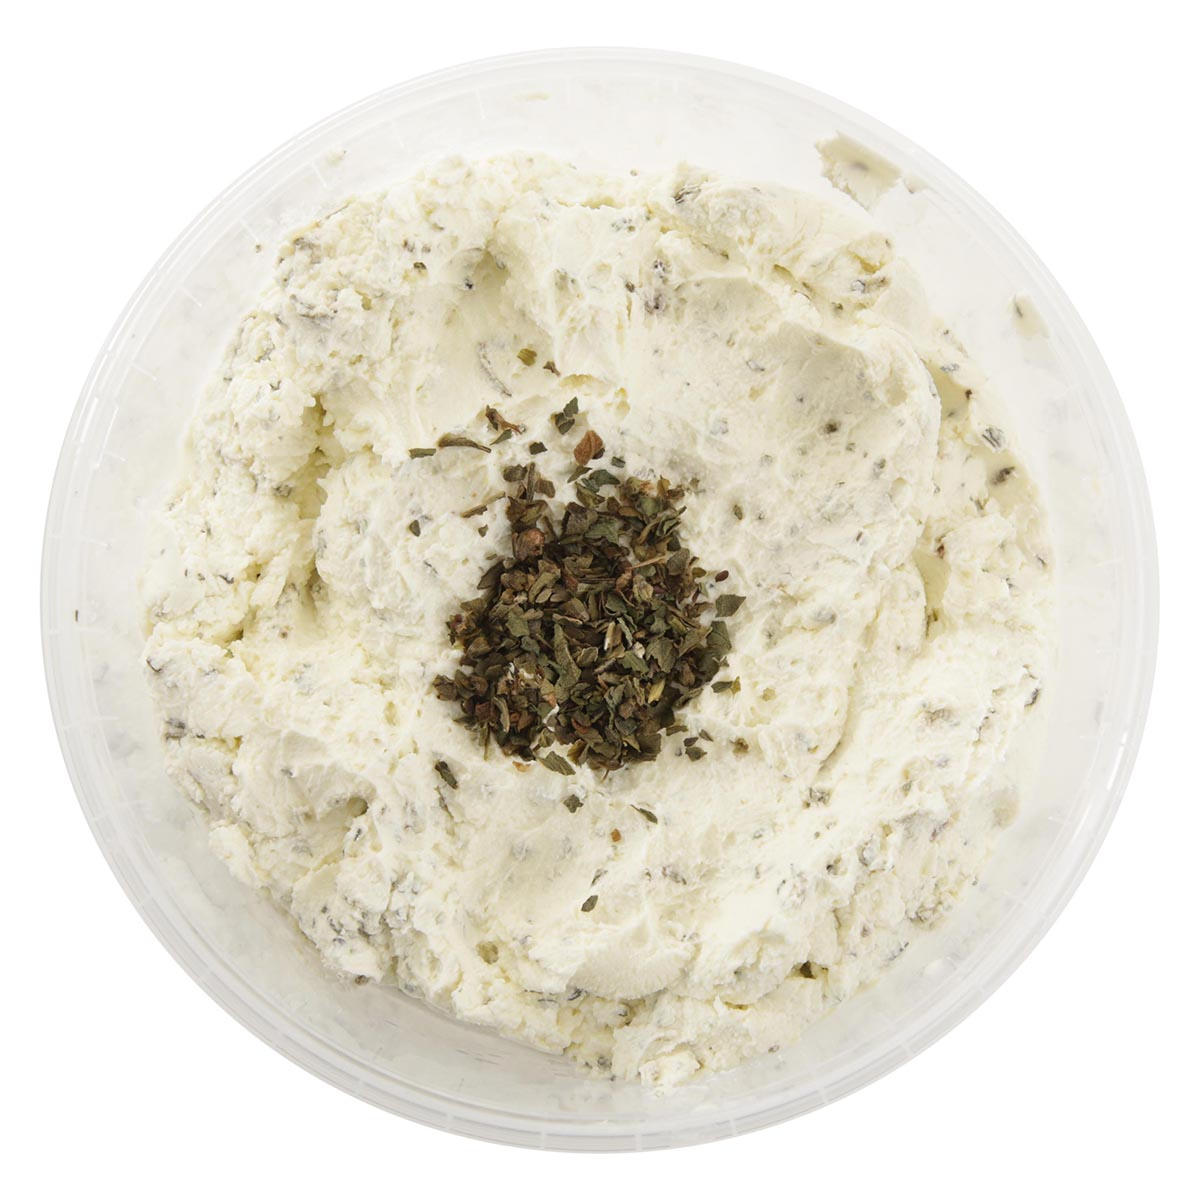 Biolaa cream cheese